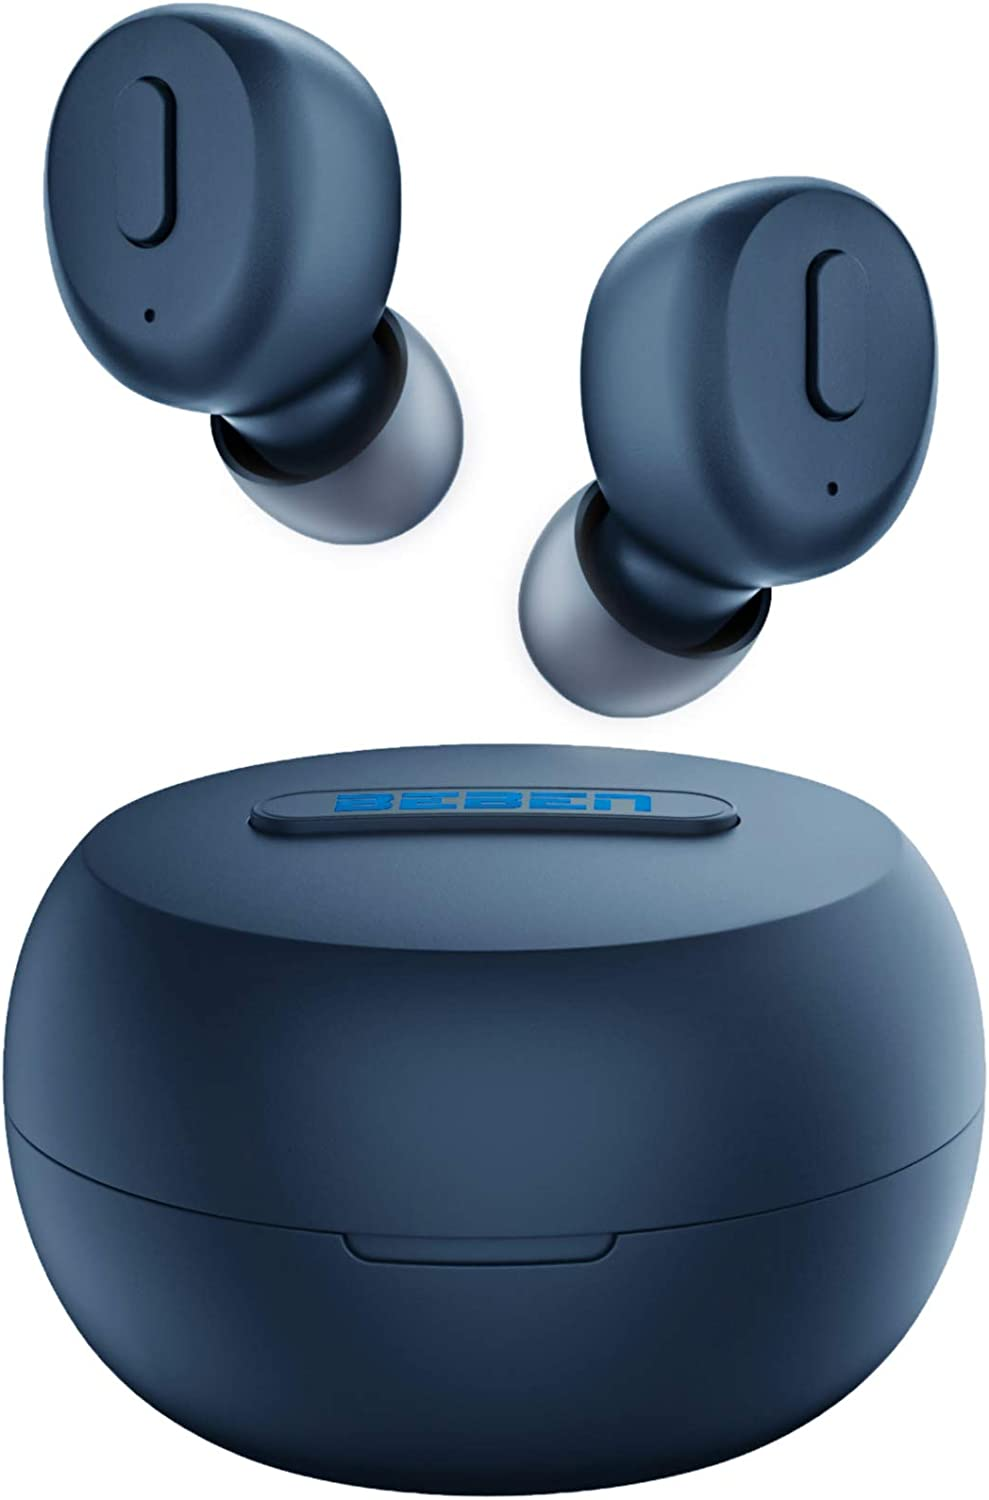 BEBEN Bluetooth 5.0 True Wireless Earbuds, IPX8 Waterproof 30H Cyclic Playtime TWS Stereo Headphones for iPhone Android with Charging Case, in-Ear Earphones Headset with mic for Sport - Navy Blue